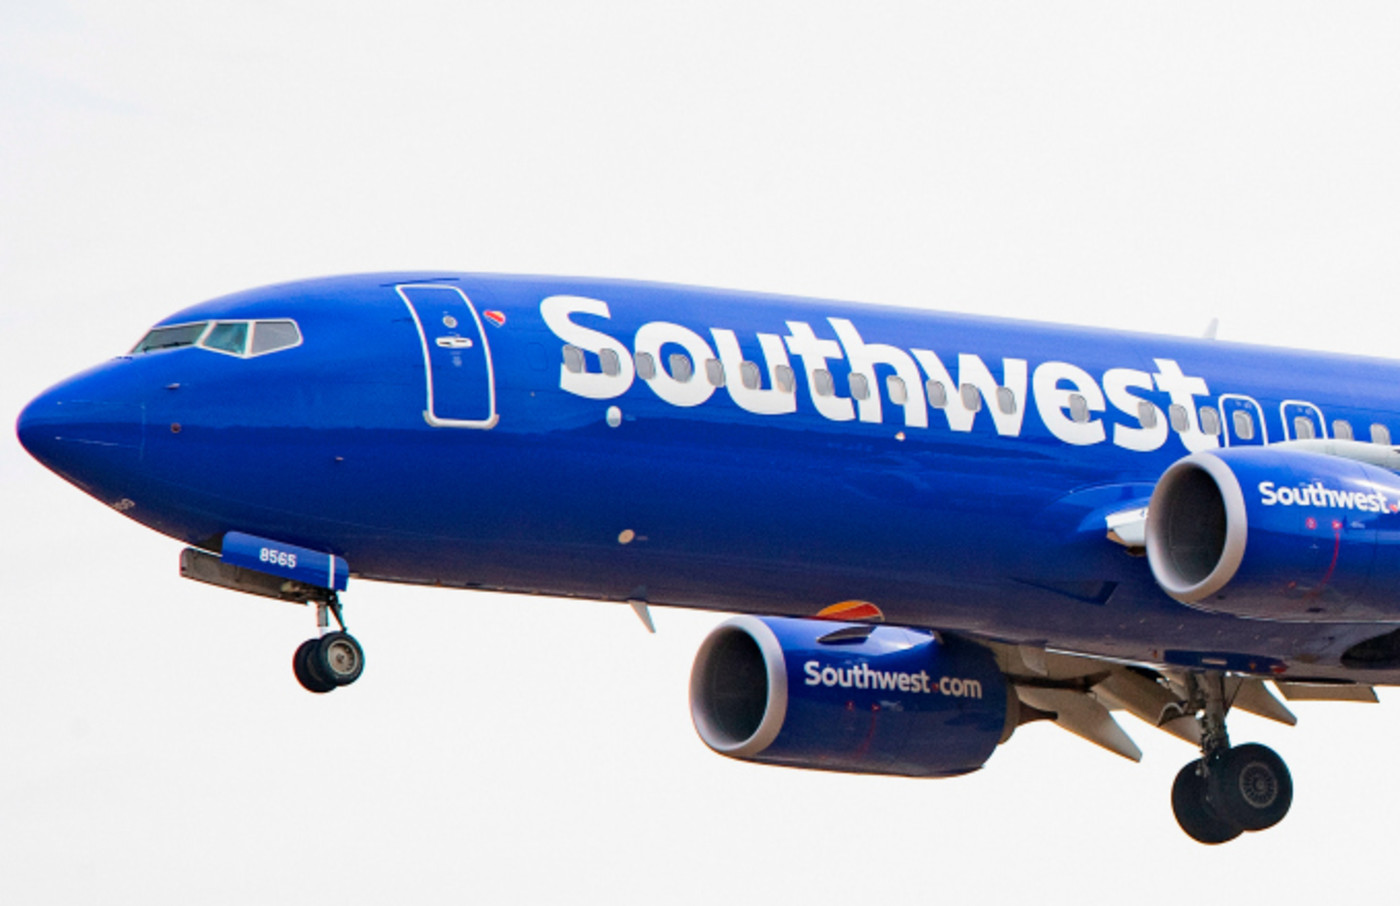 A Boeing 737 800 flown by Southwest Airlines